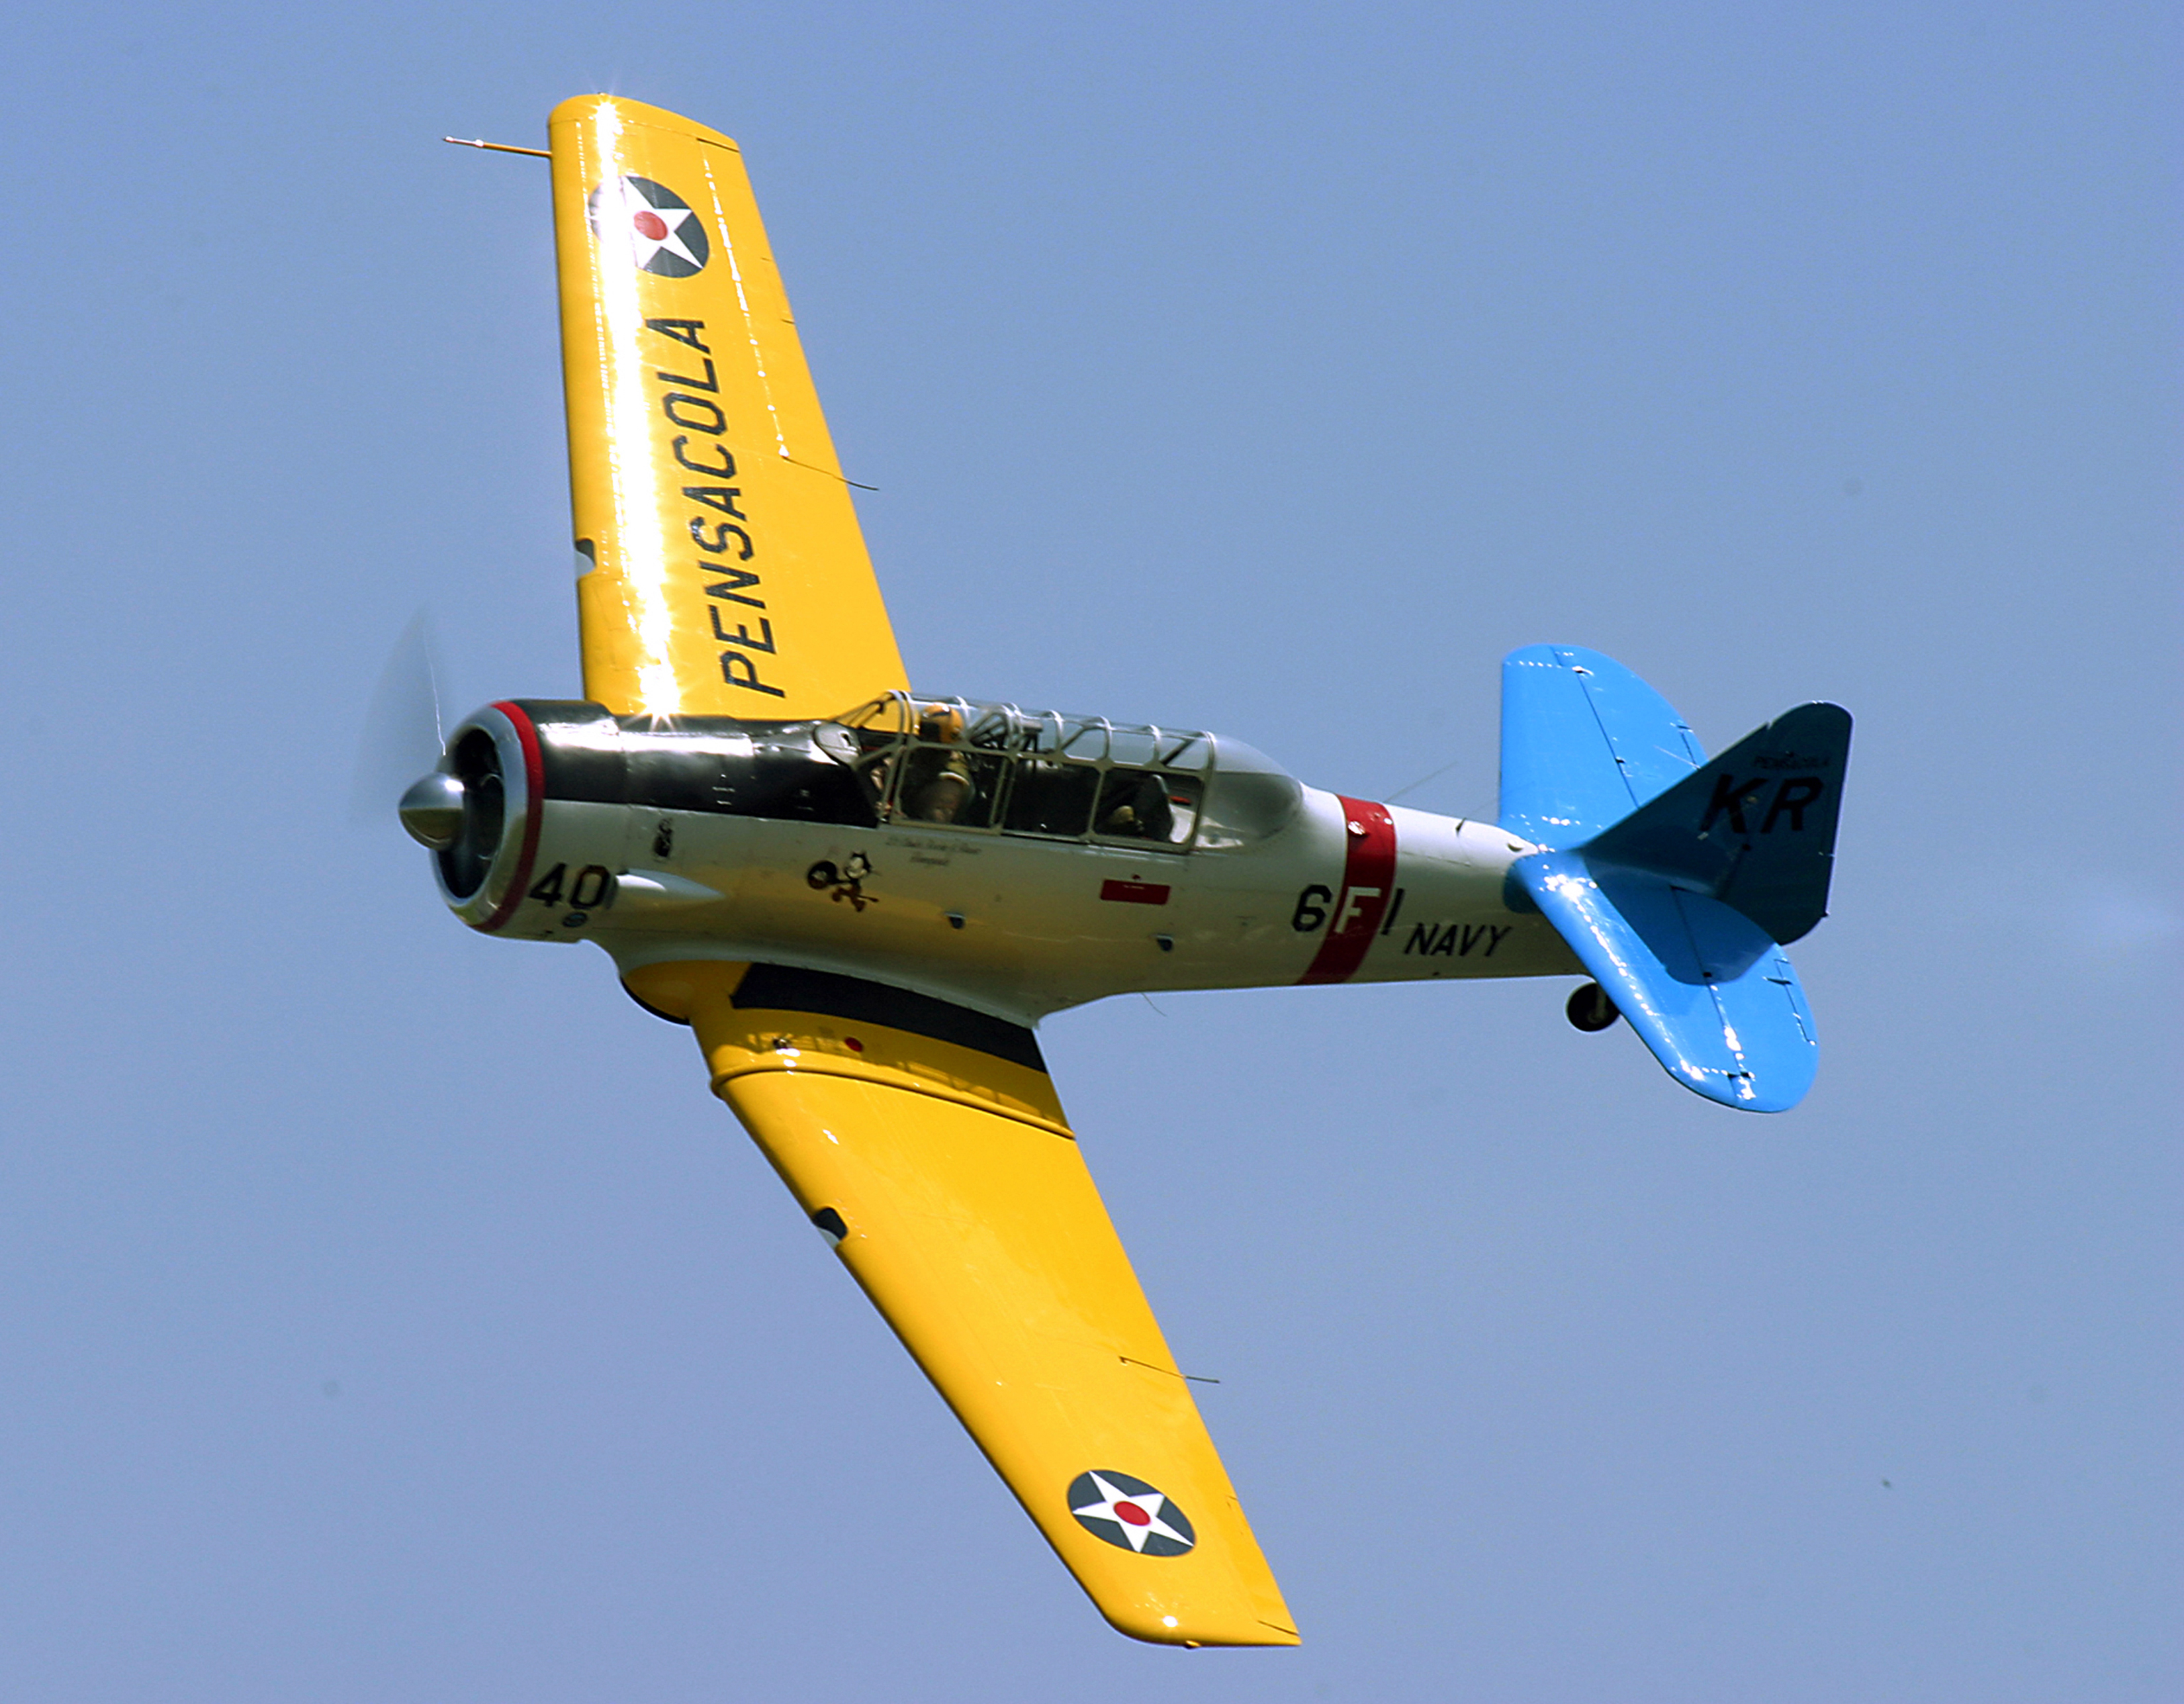 Aircraft of the Show - Leesburg Airshow